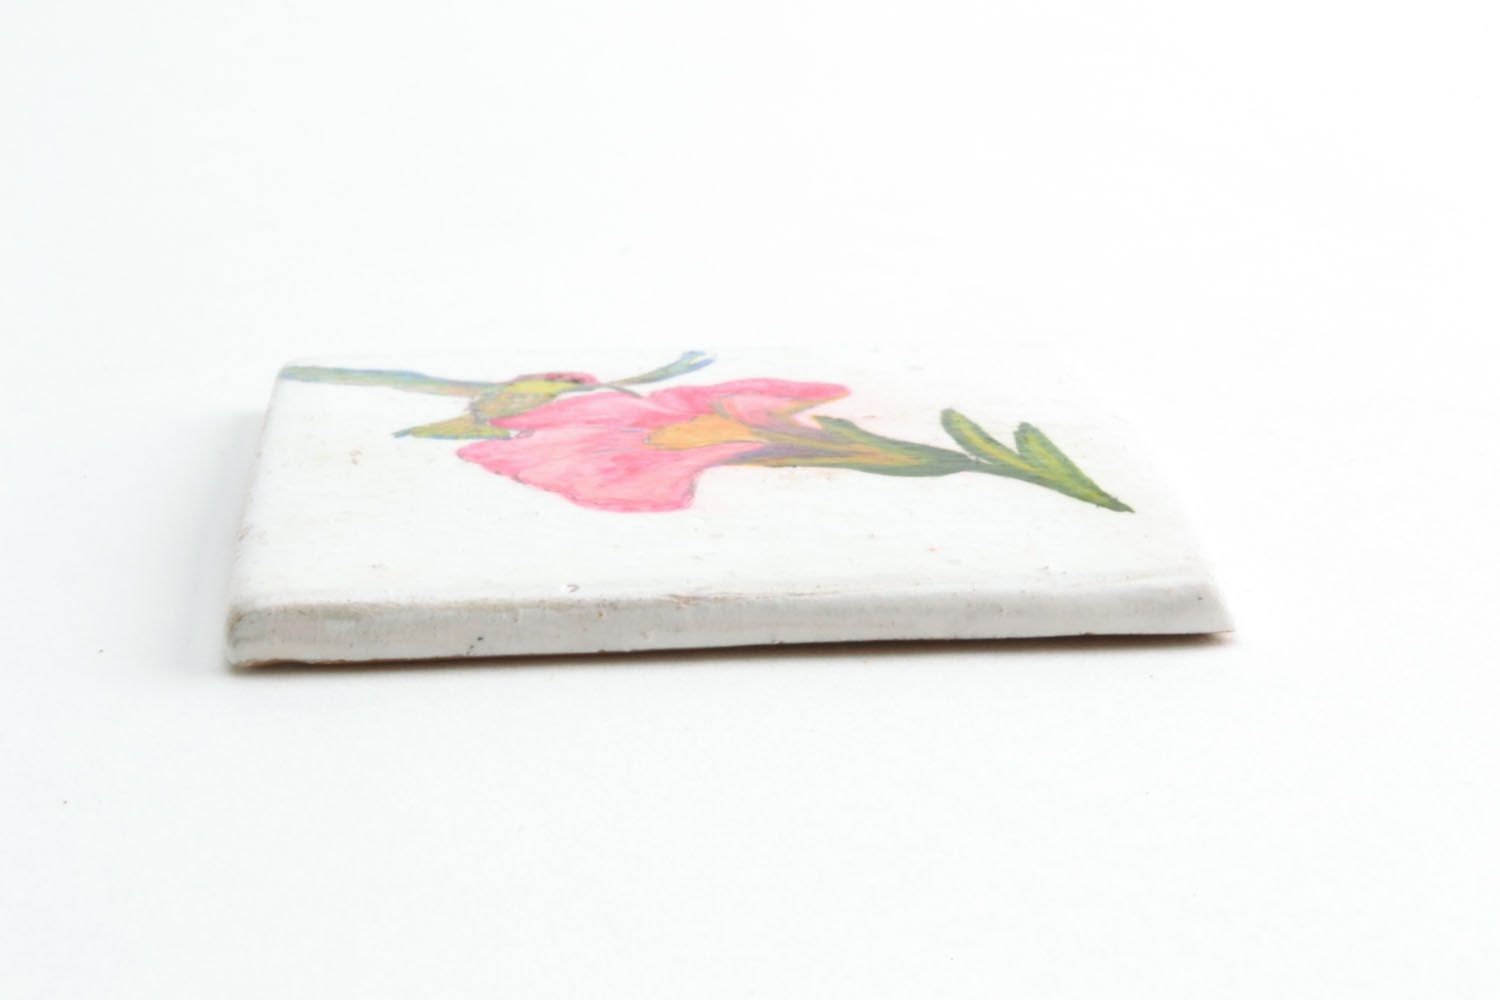 Homemade ceramic fridge magnet photo 5